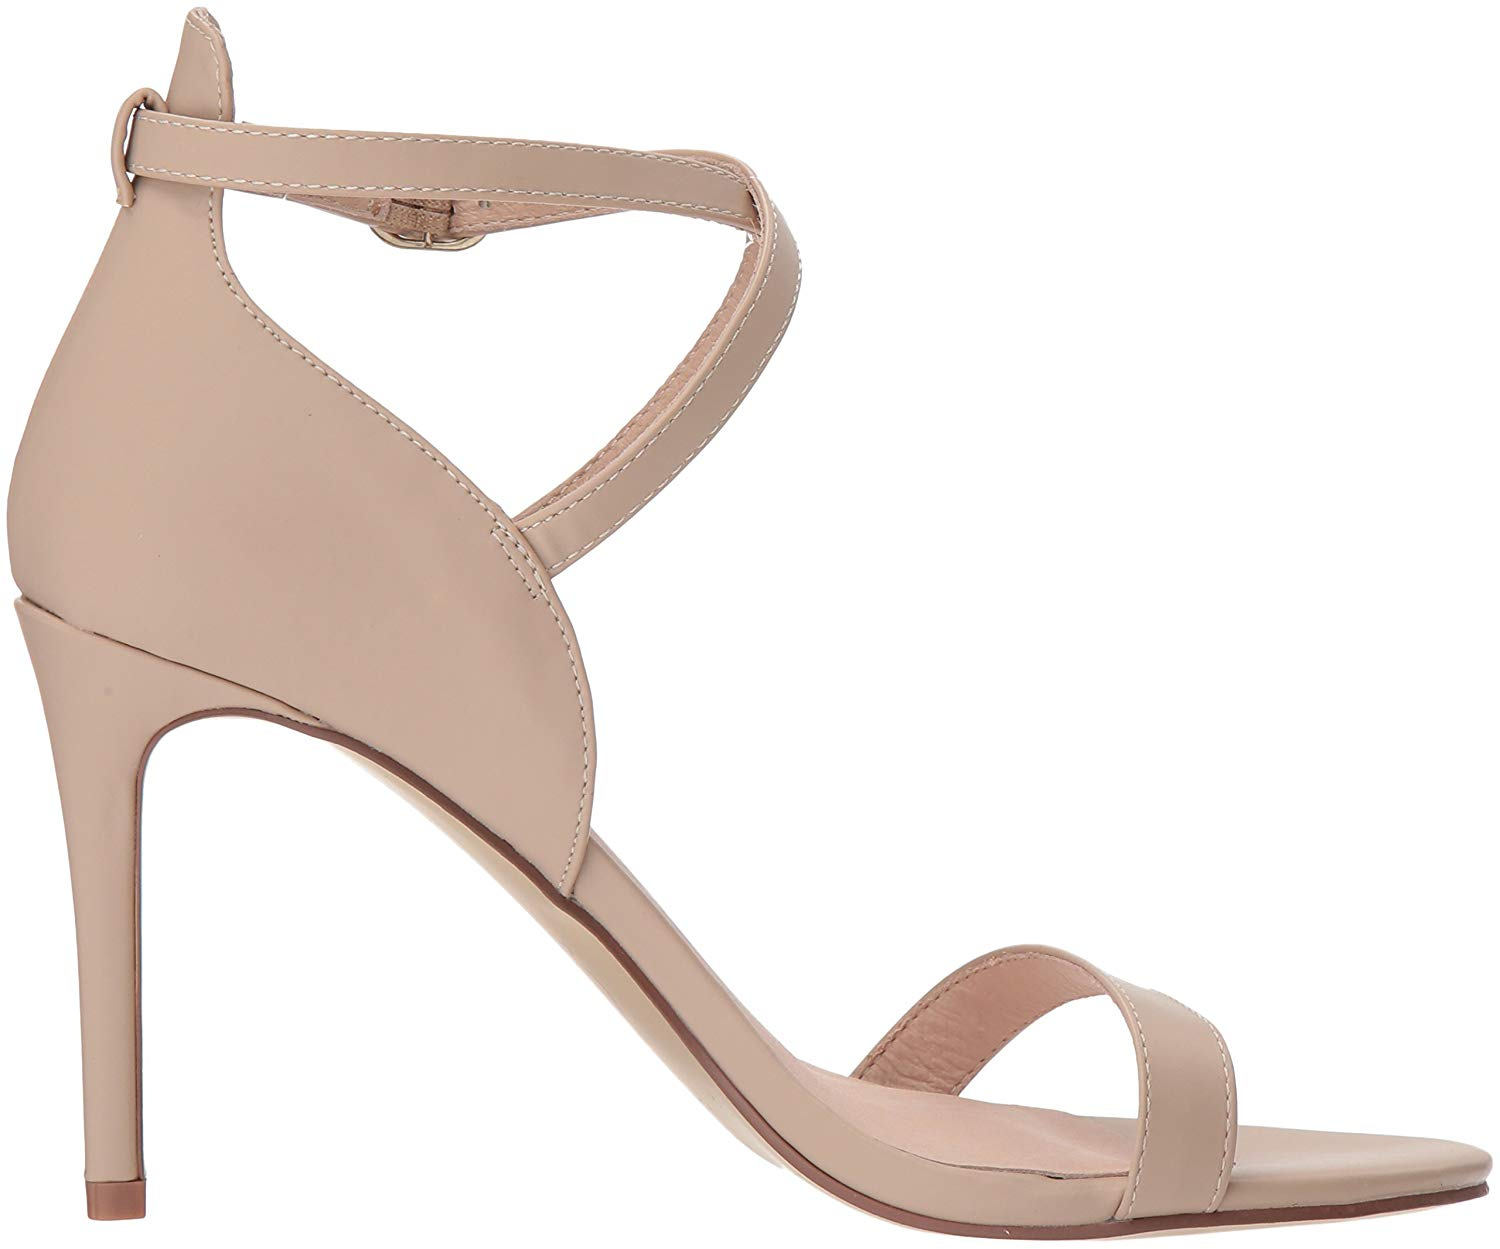 dba63a48ba7 Chinese Laundry Womens Sabrie Open Toe Special Occasion Ankle Strap ...